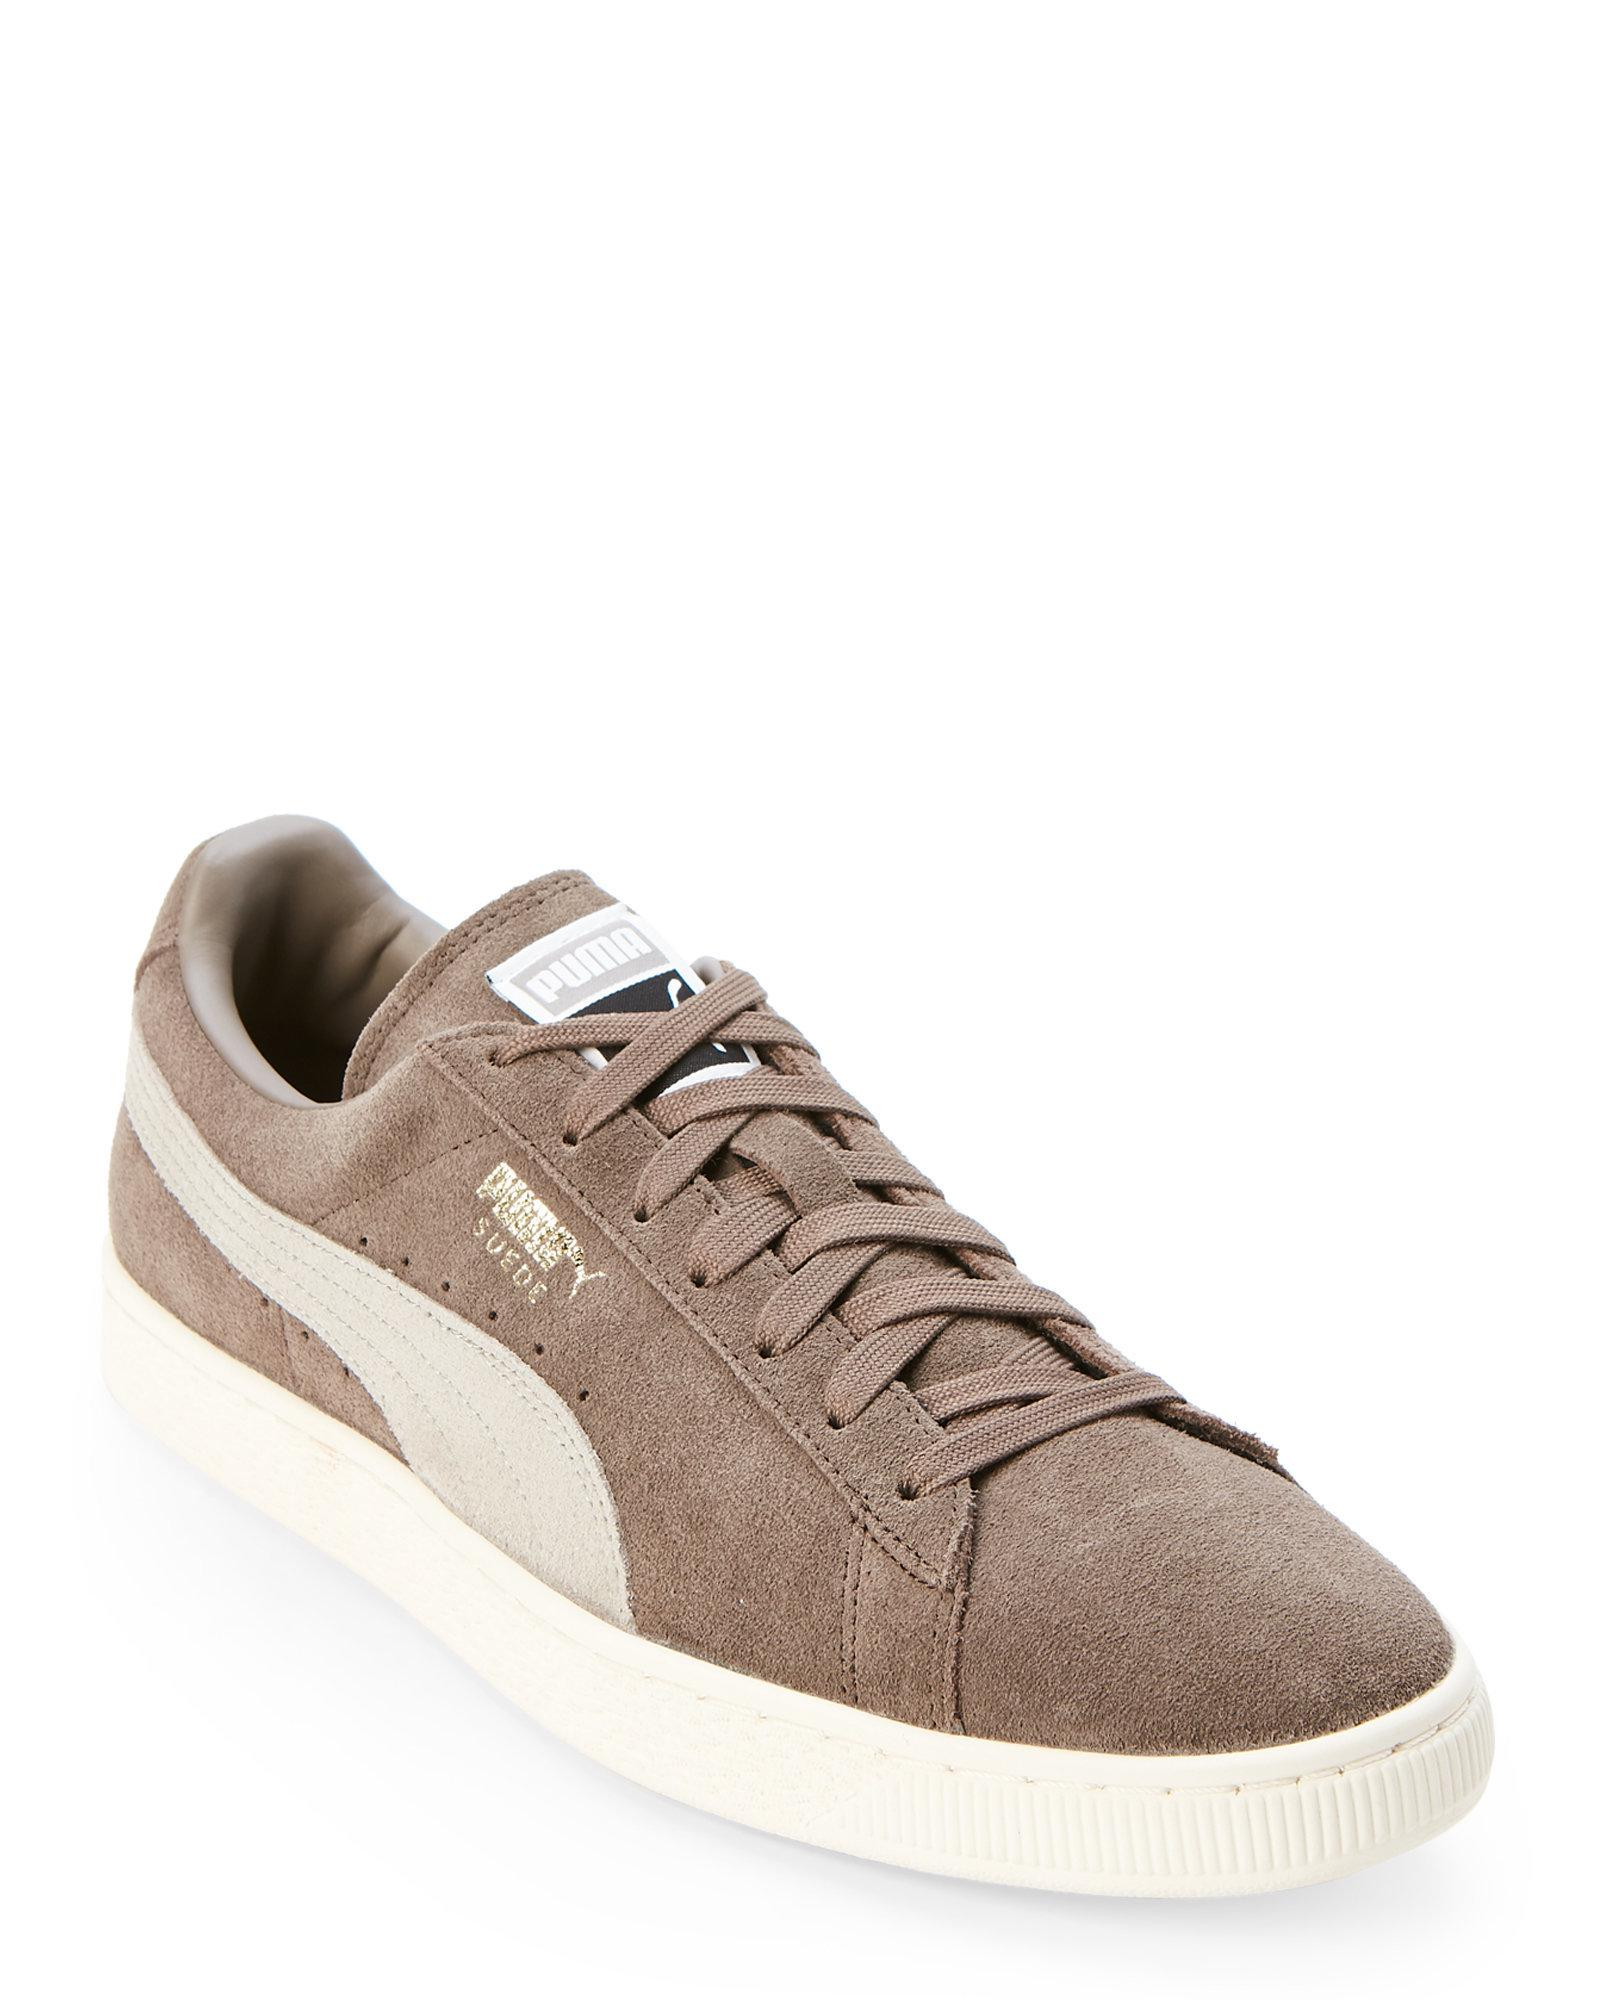 PUMA Falcon & Rockridge Suede Classic Low Top Sneakers for